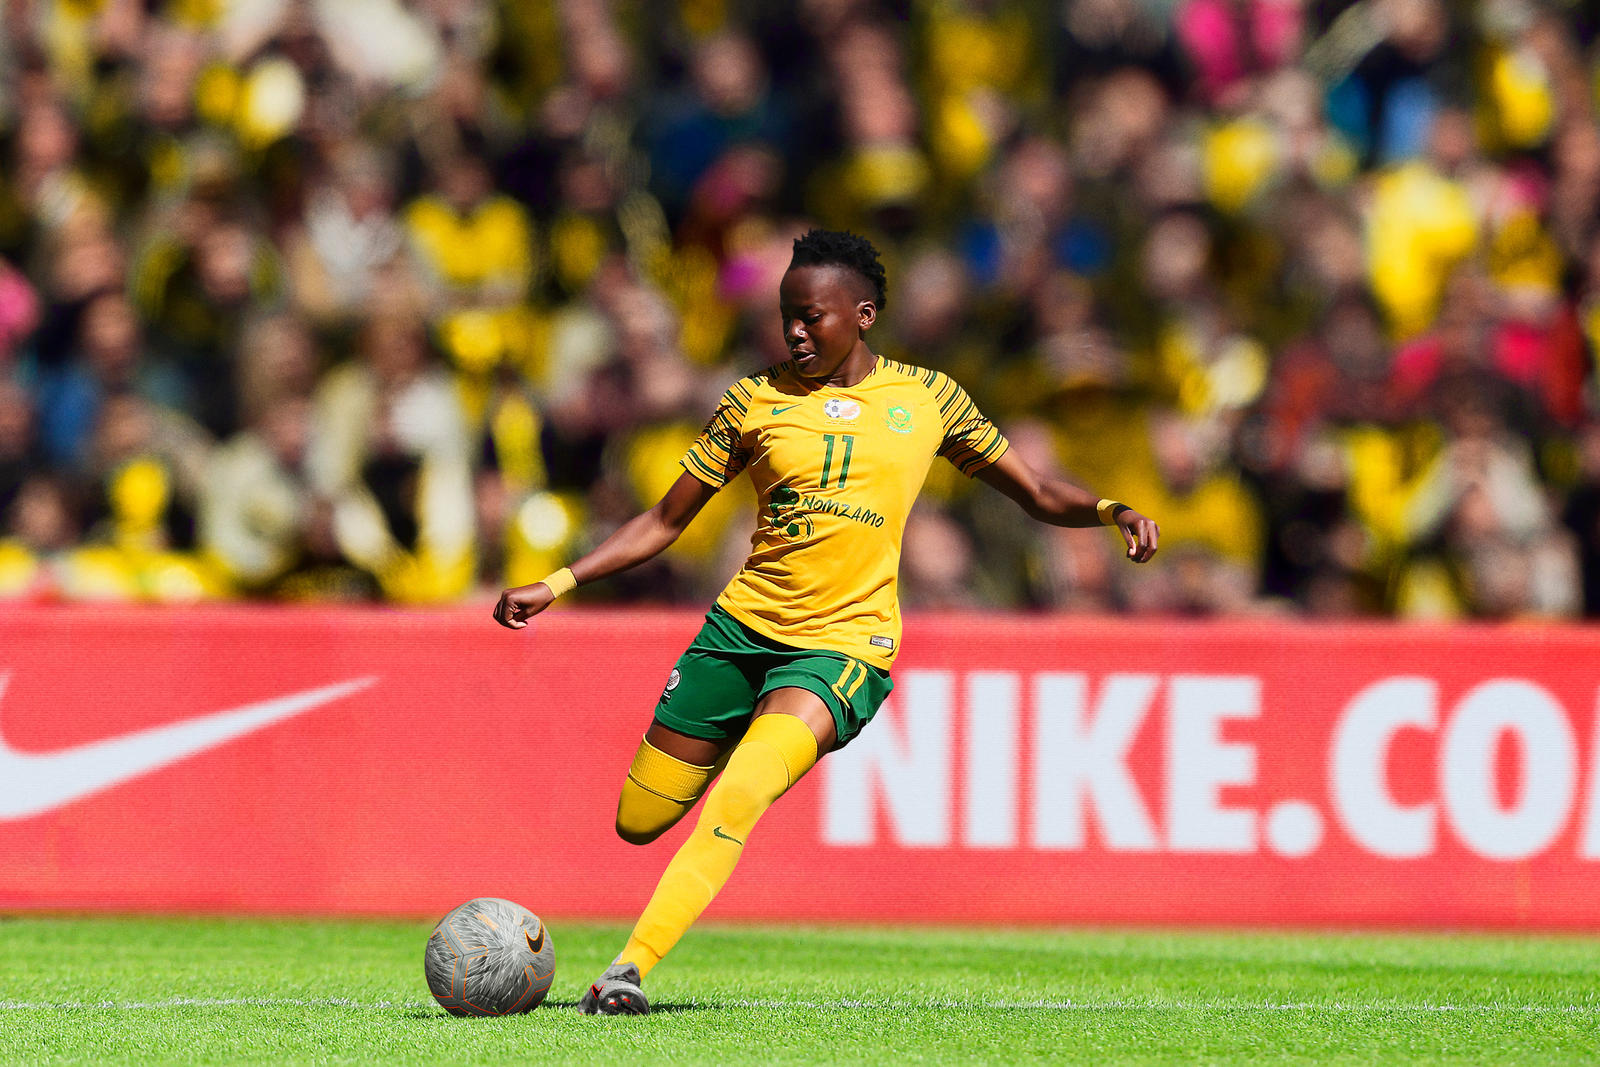 south-africa-national-team-kit-2019-performance-2_85966.jpg